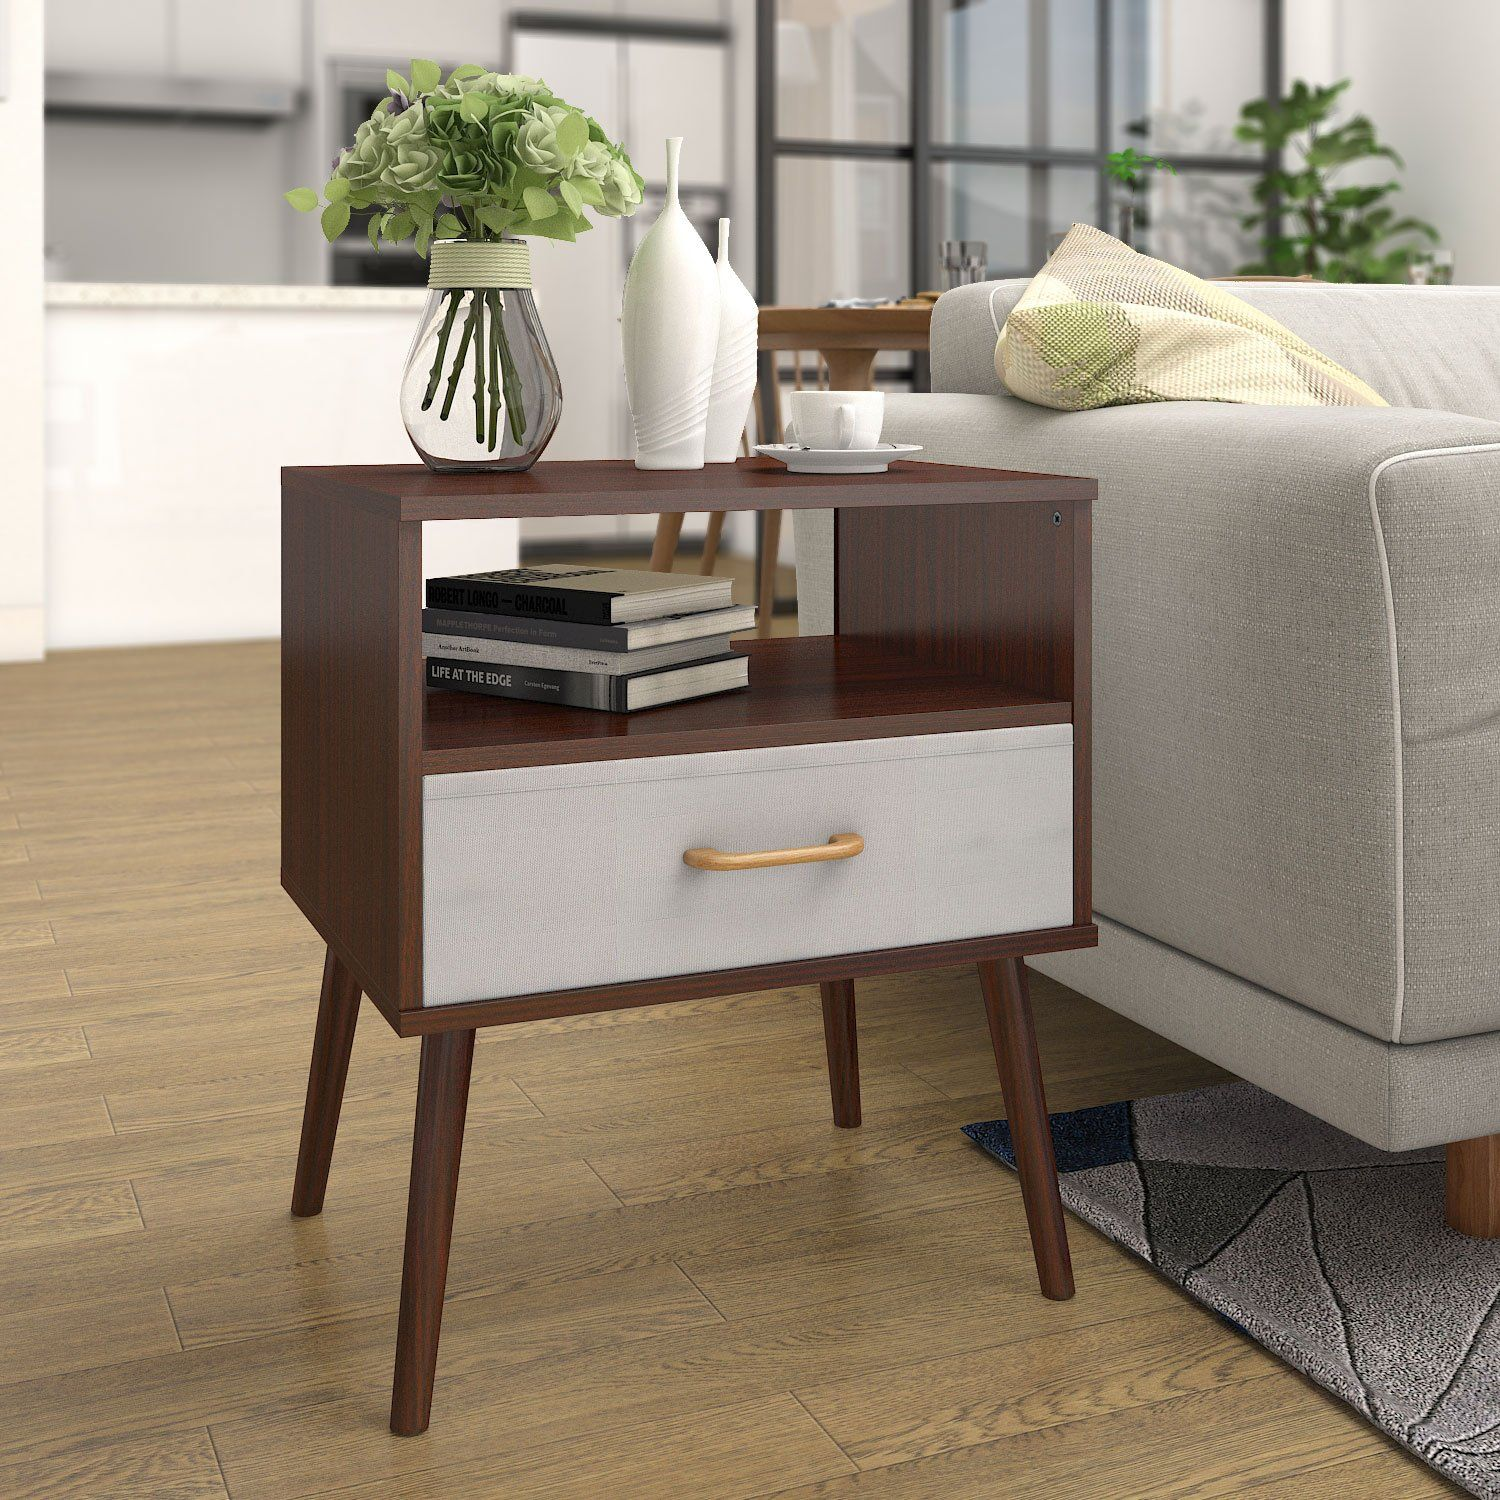 Best Mid Century Modern Nightstand With Open Storage Or A 400 x 300